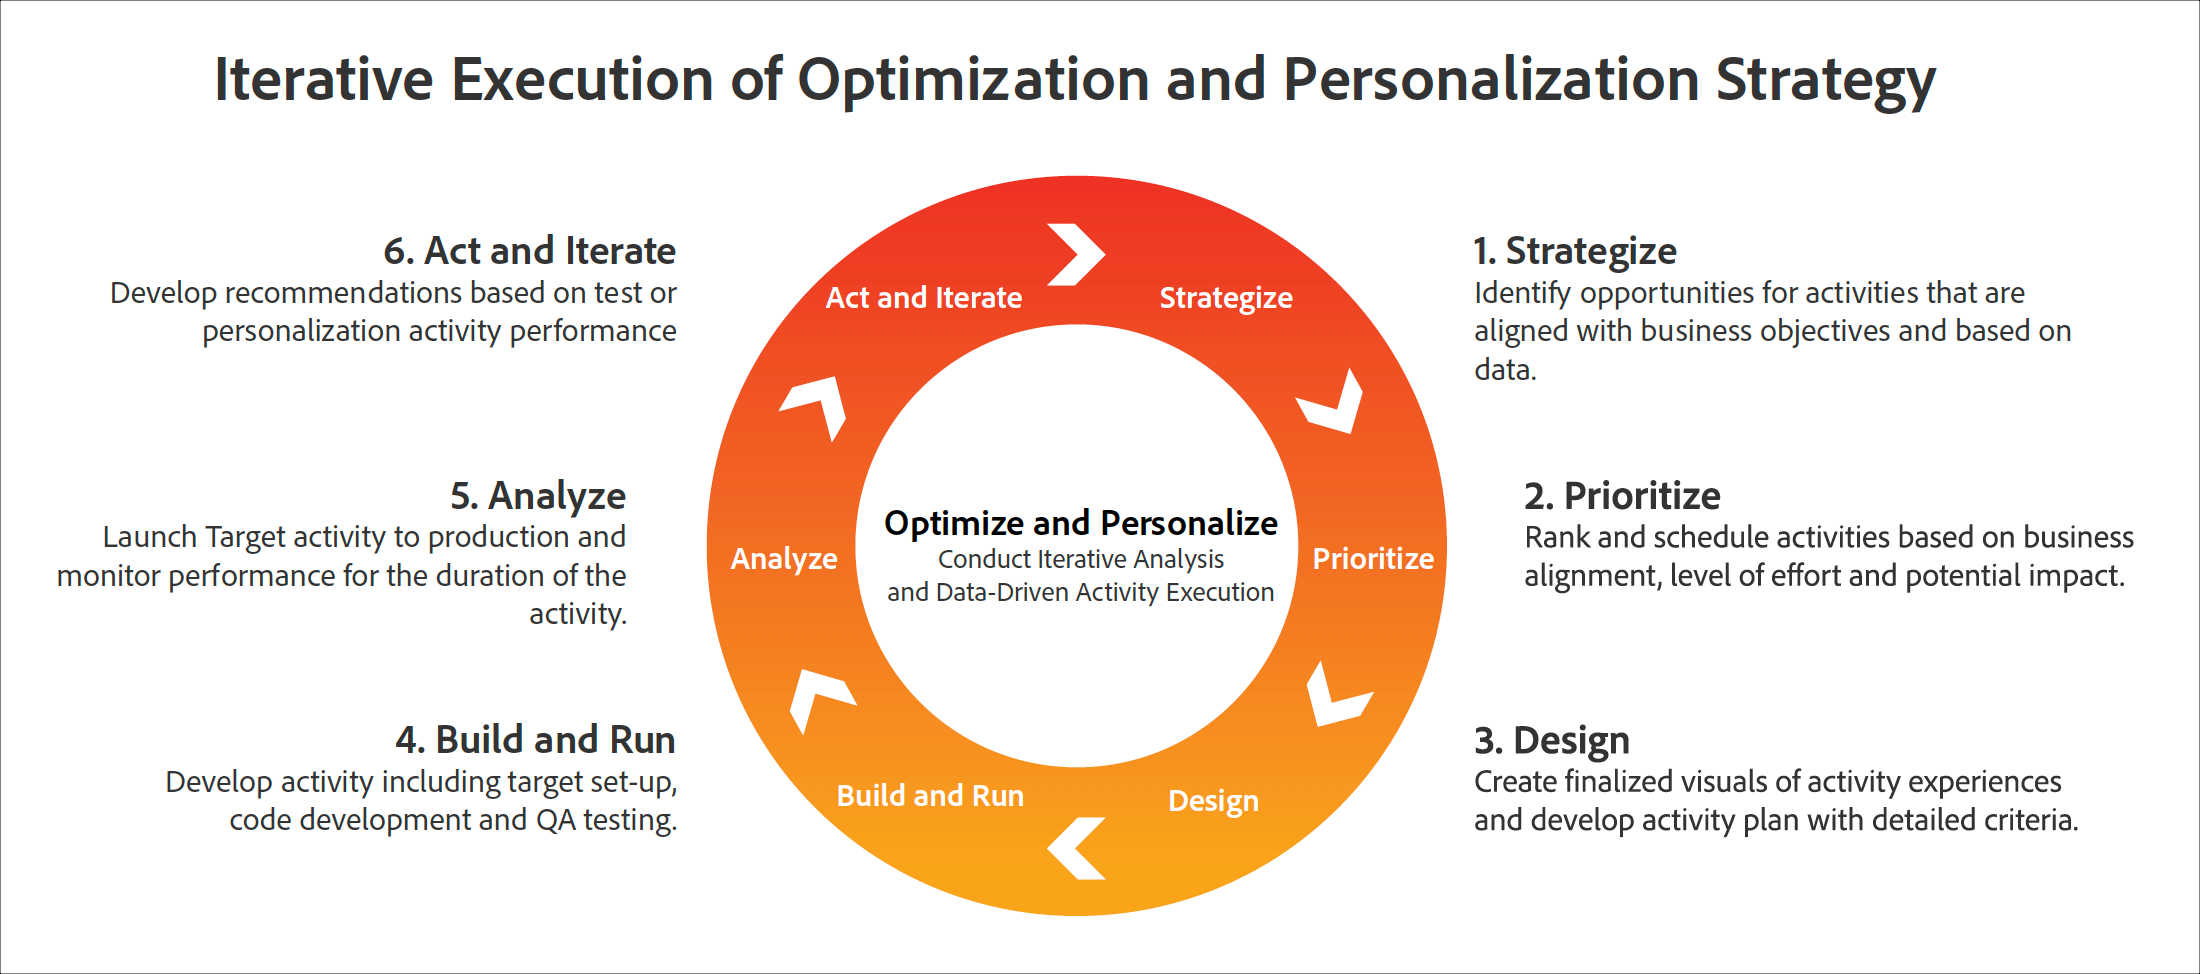 Iterative Execution of Optimization and Personalization Strategy diagram